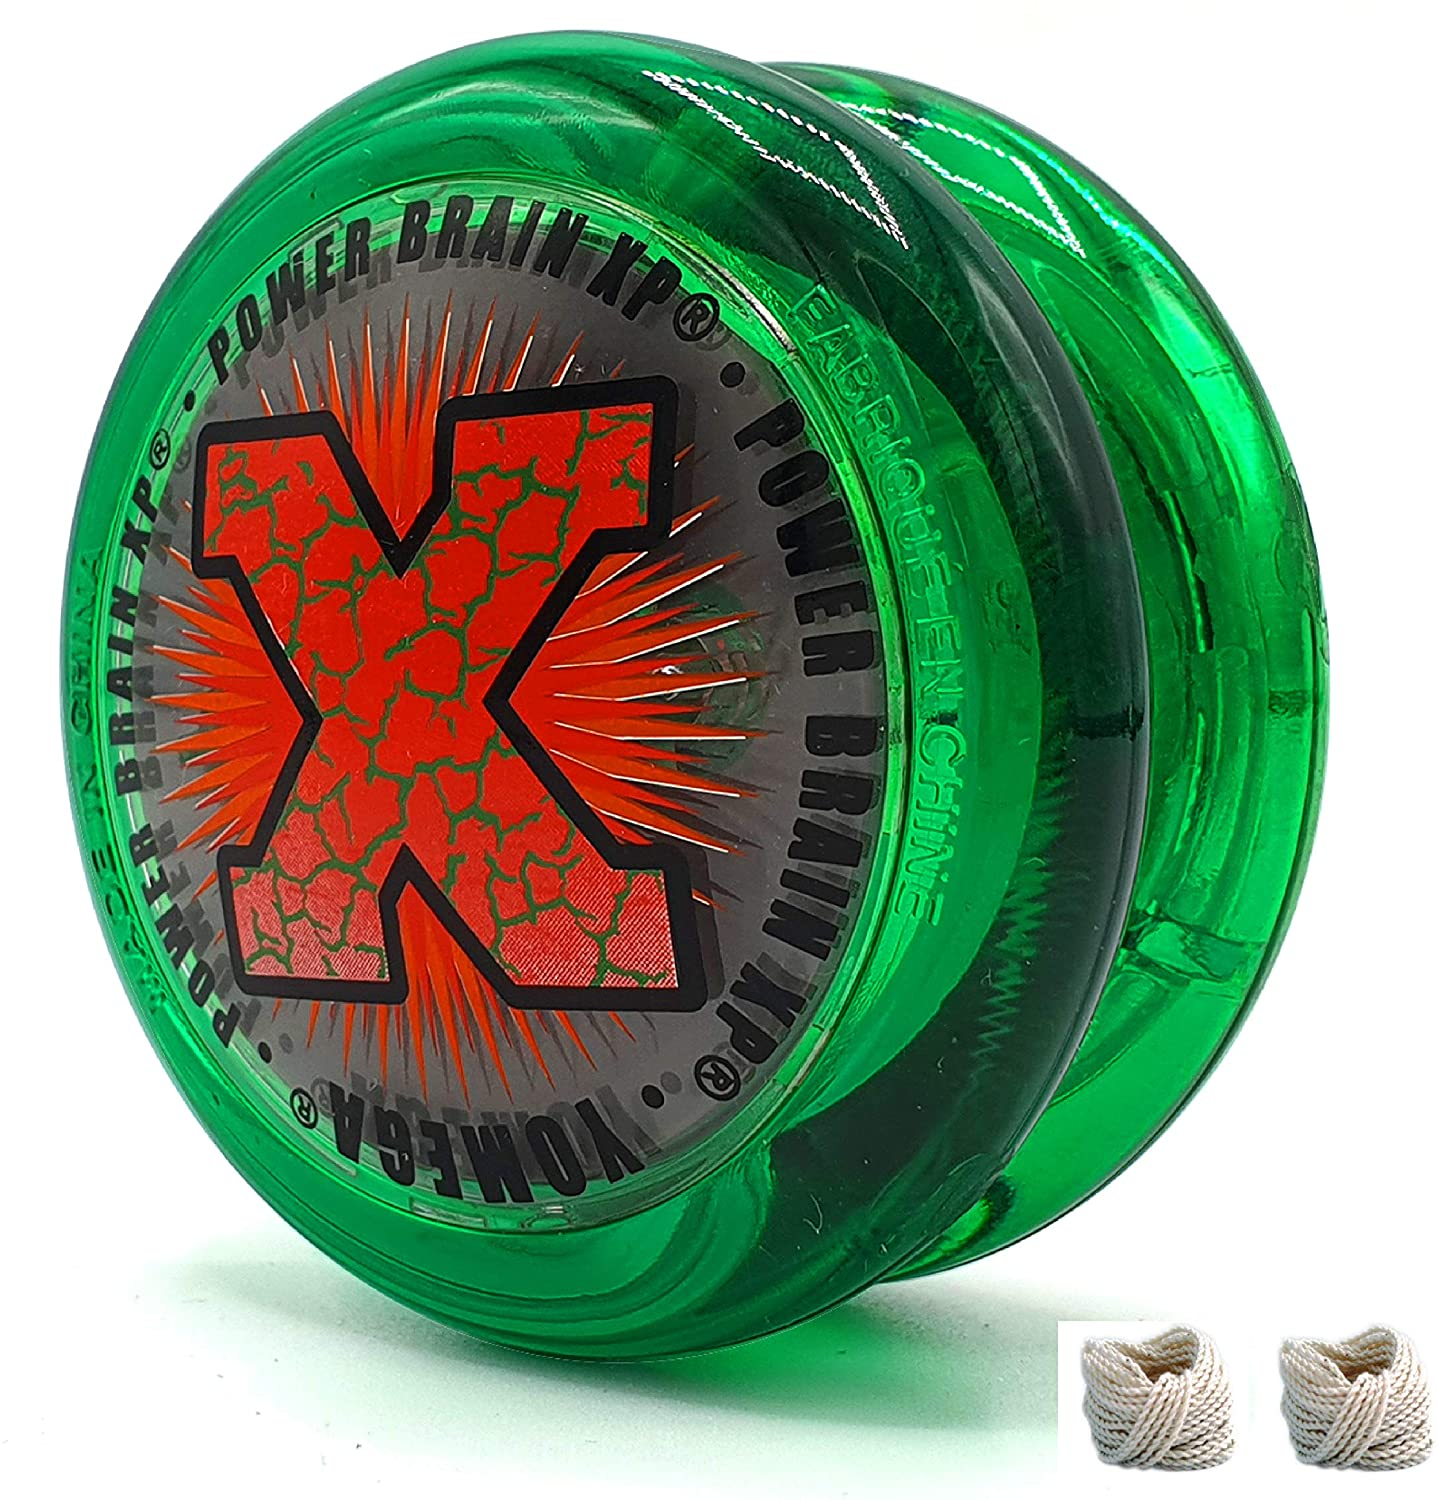 Yomega Power Brain XP yoyo - Includes Synchronized Clutch and a Smart Switch which enables Players to Choose Between auto-Return and Manual Styles of Play + Extra 2 Strings (Green)